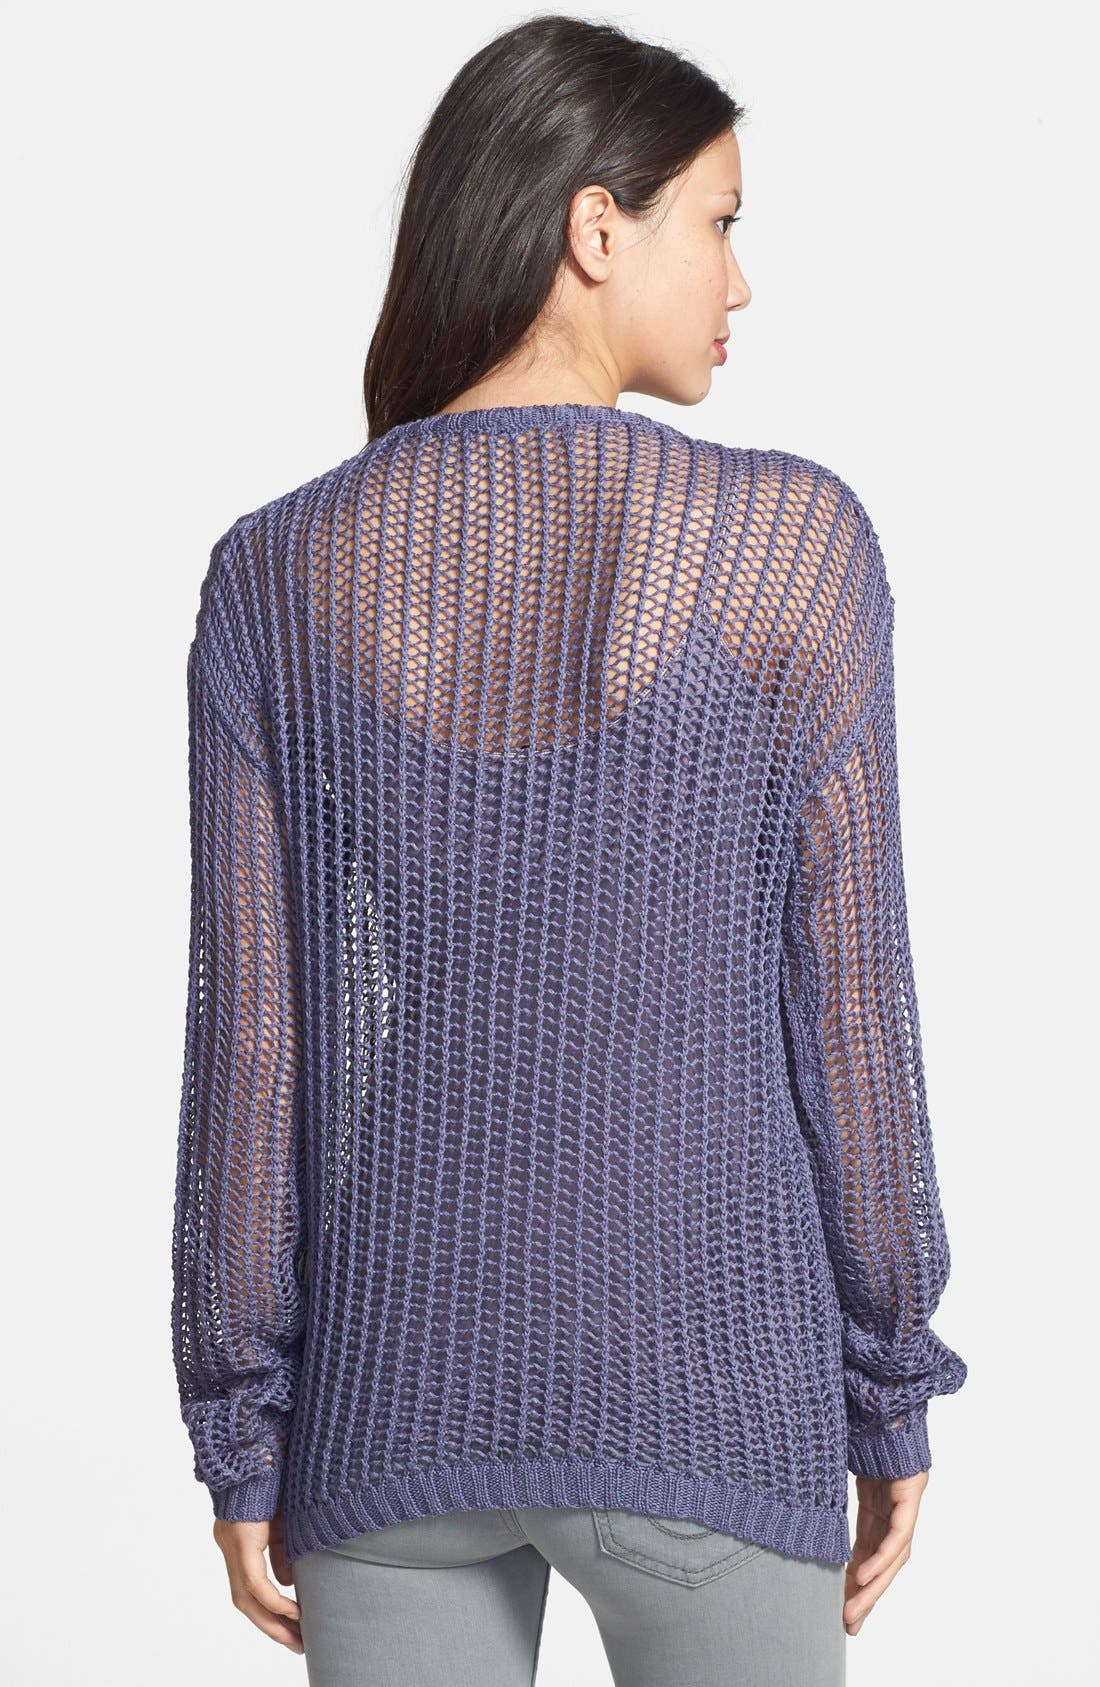 'Ultramarine' Open Stitch Sweater,                             Alternate thumbnail 3, color,                             400